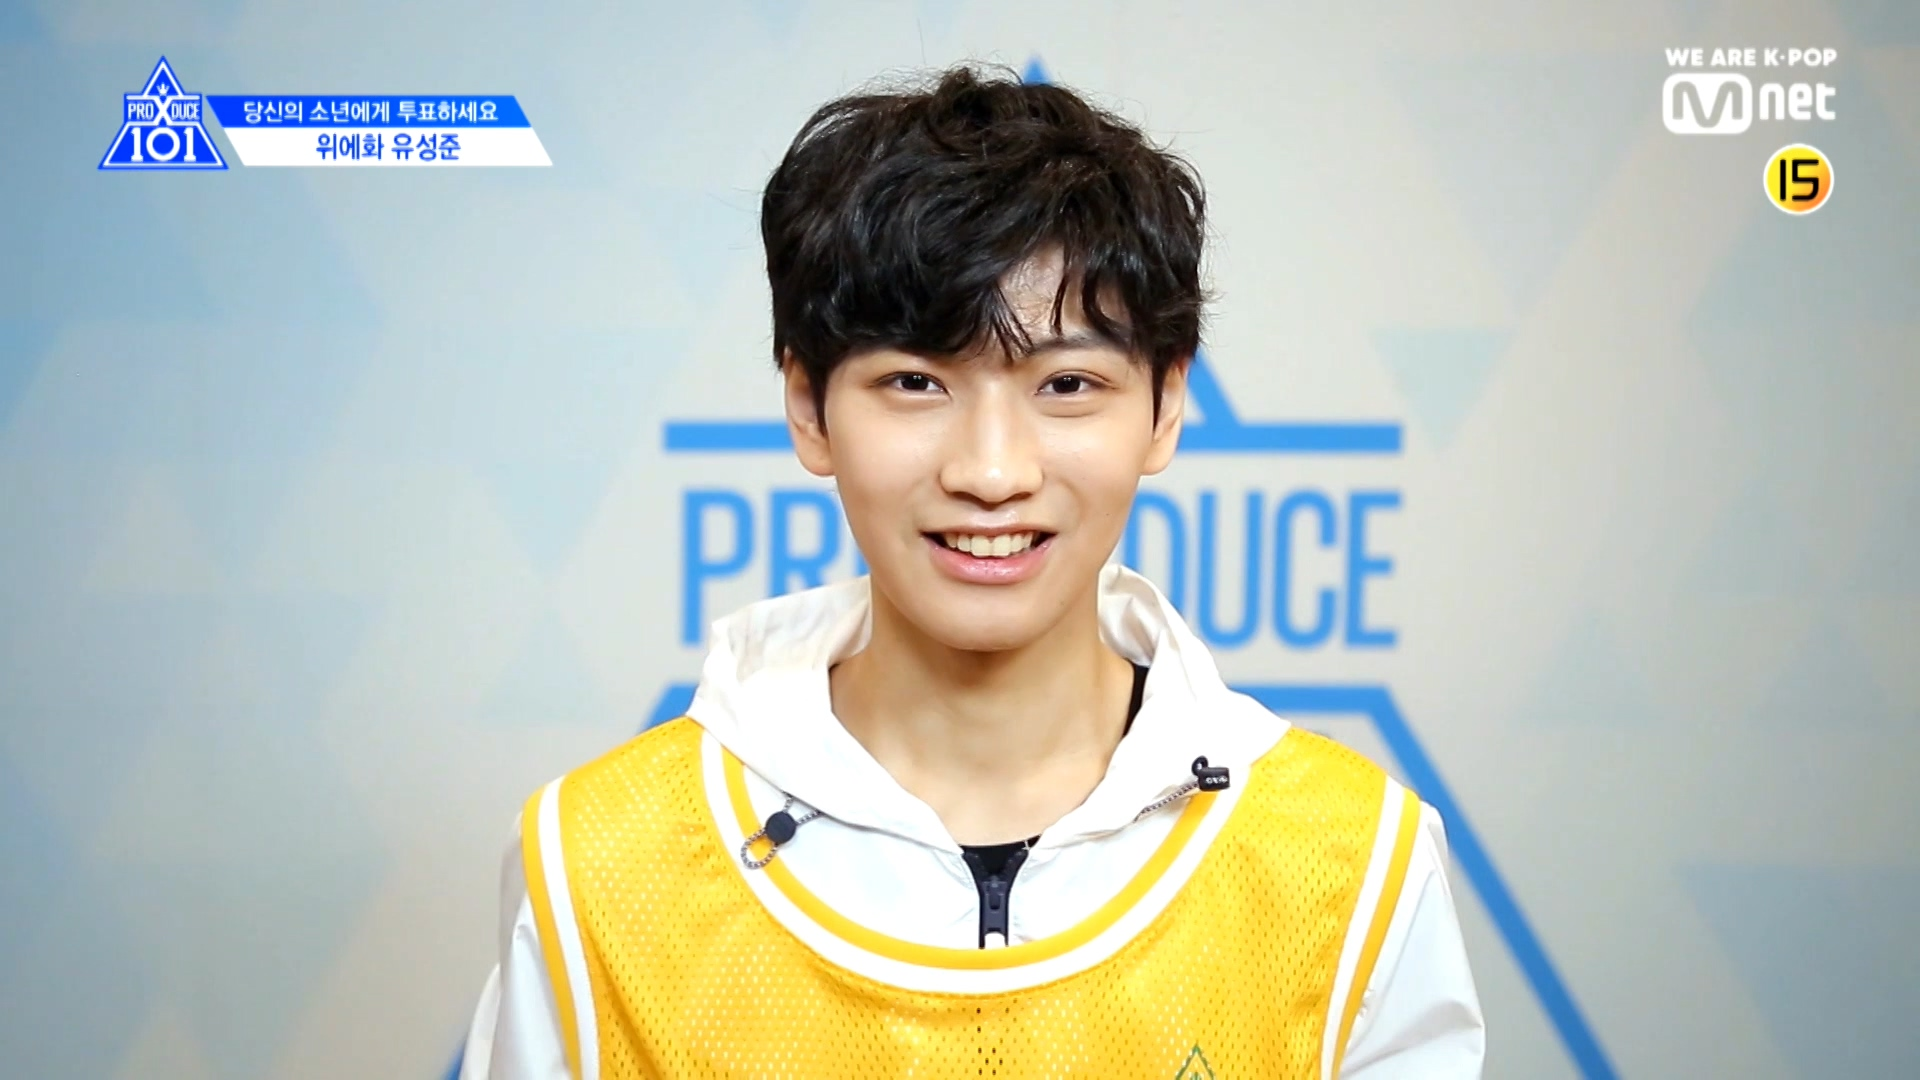 [PRODUCE X 101] EYE CONTACT CHALLENGE l YU SEONG JUN(YUEHUA)